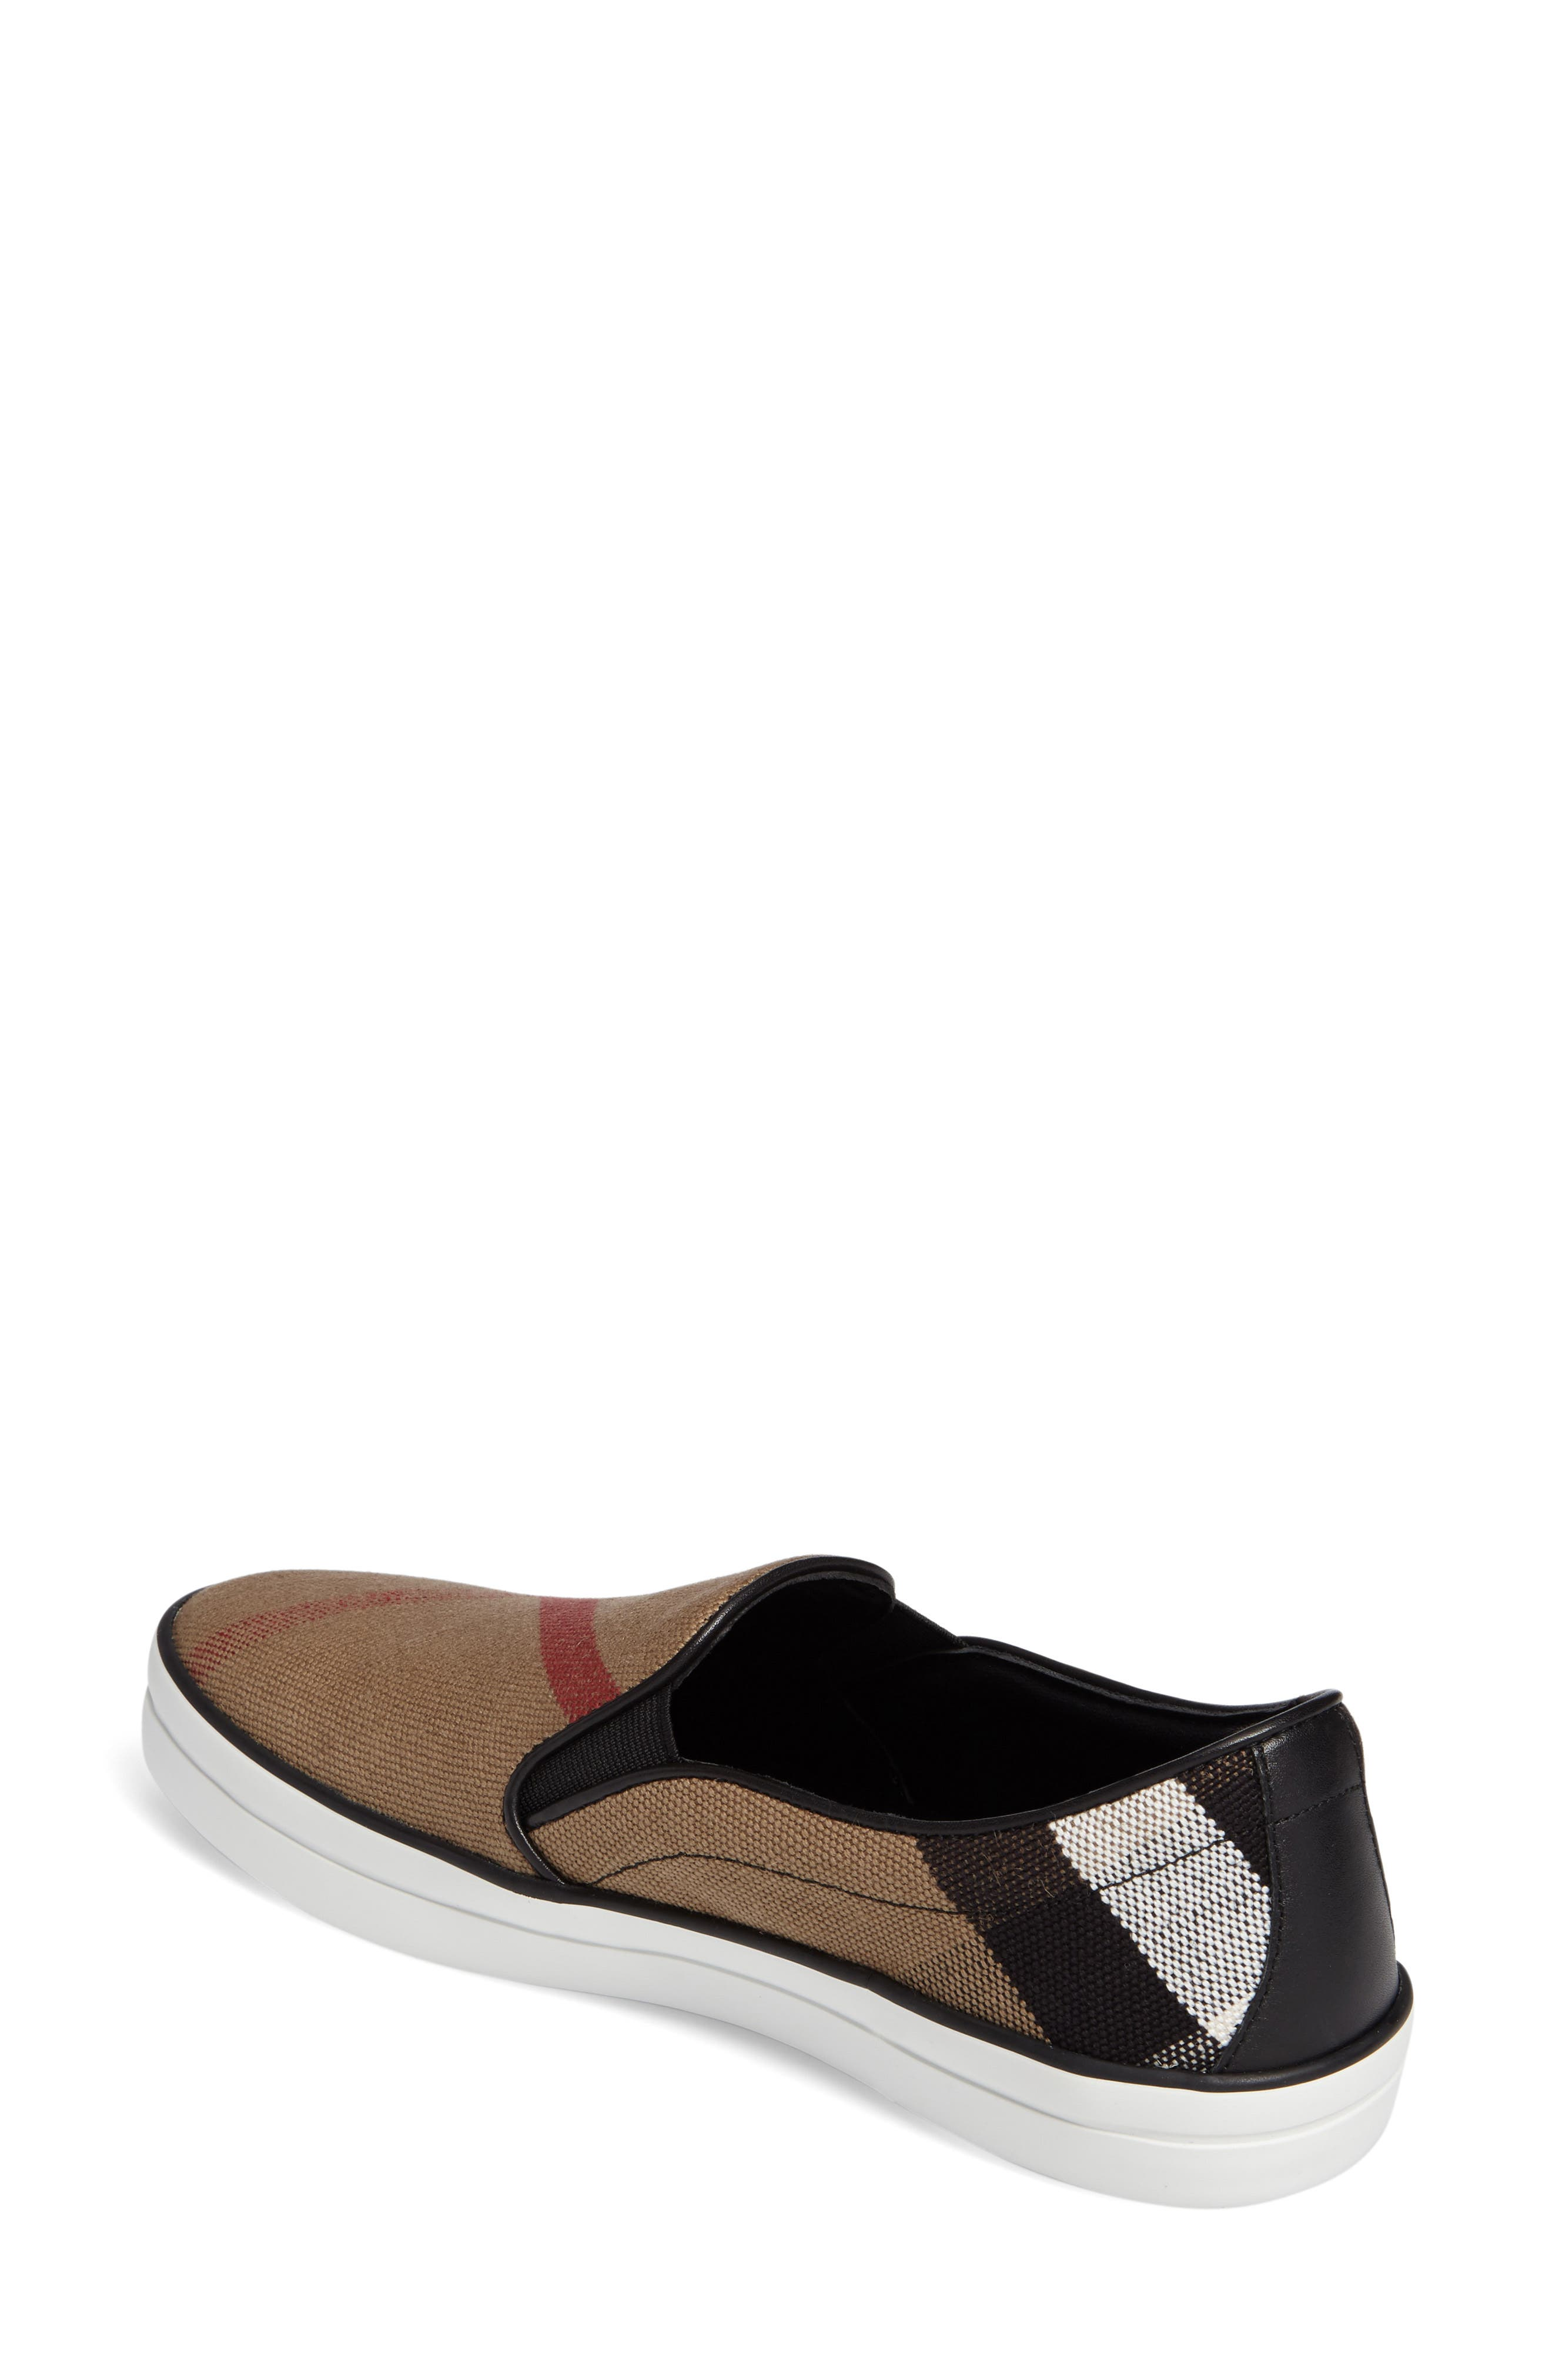 Gauden Slip-On Sneaker,                             Alternate thumbnail 2, color,